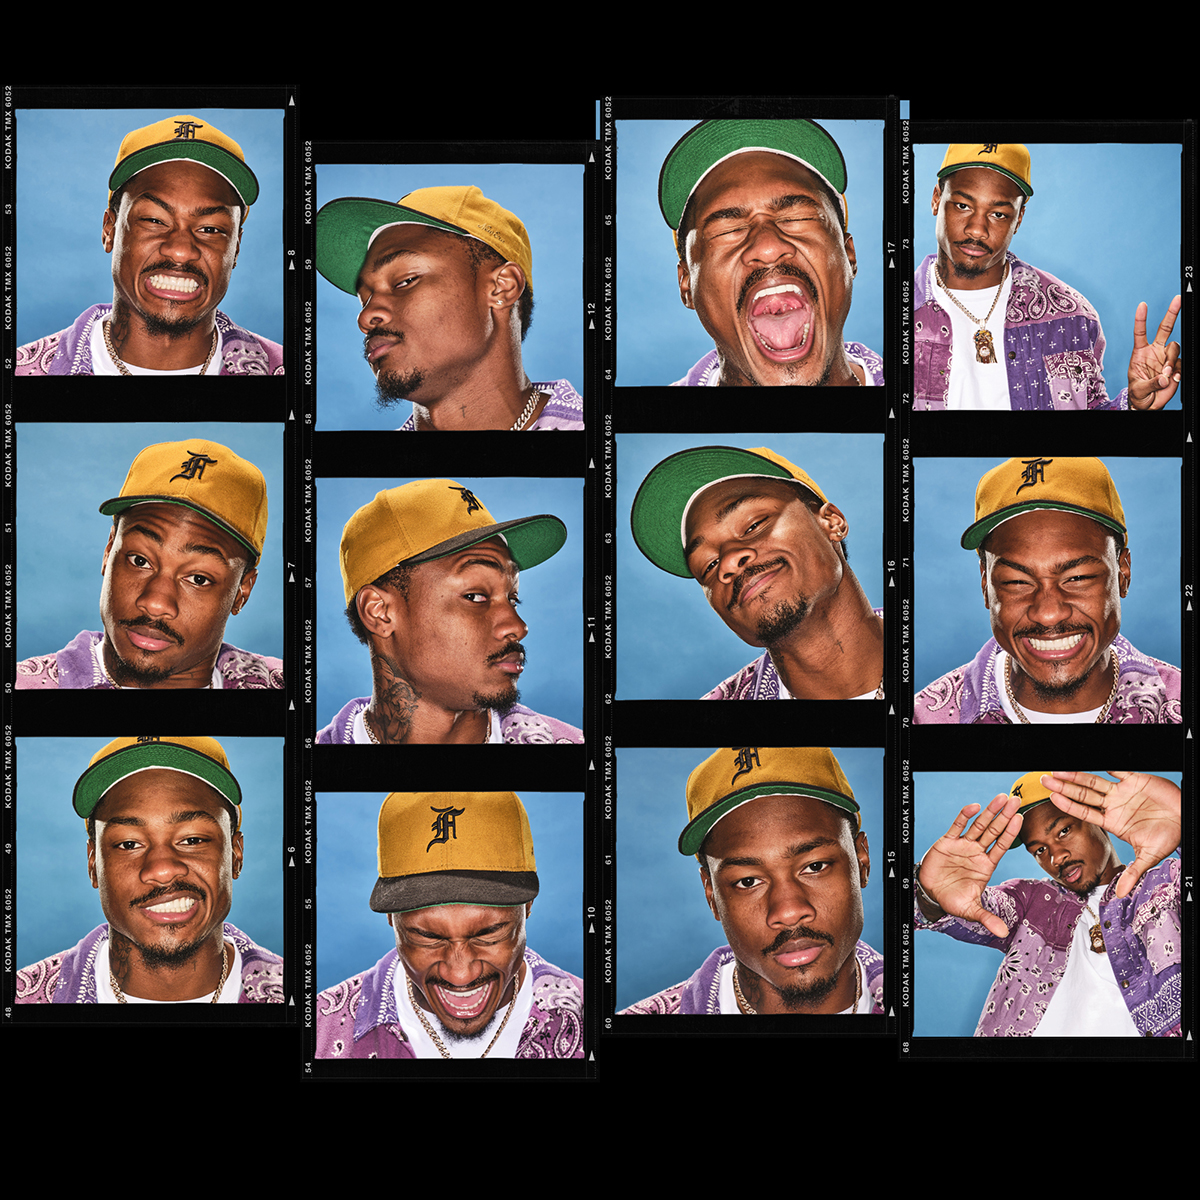 A collage of portraits of Stefon Diggs, in a Brady Bunch-like grid.